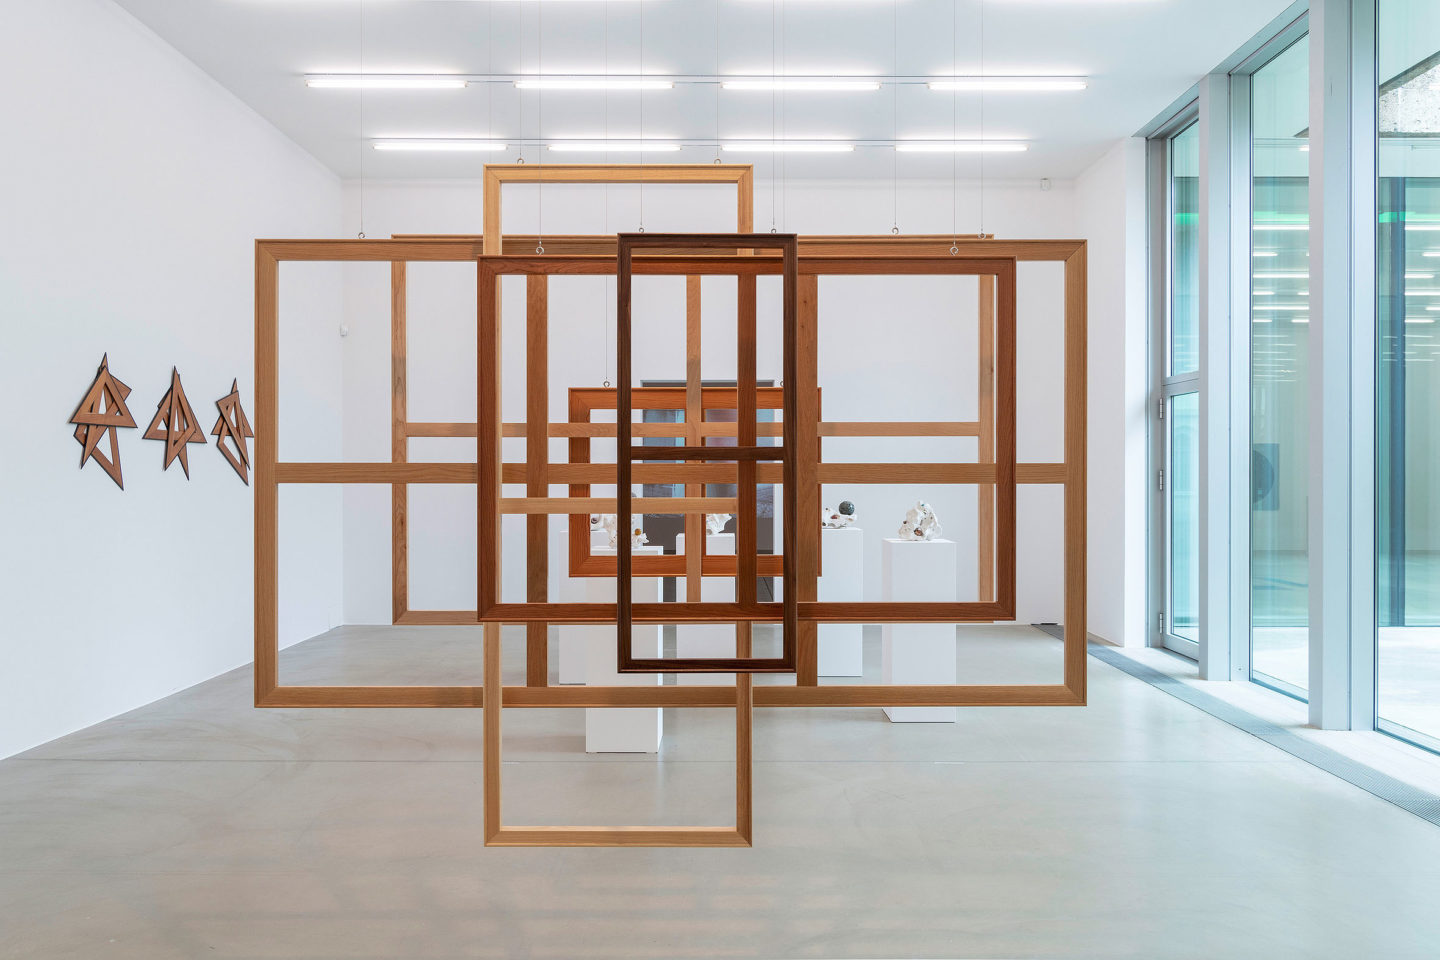 Exhibition View Su-Mei Tse «Nested» at Aargauer Kunsthaus, 2018 / Photo: René Roetheli / Courtesy: the artist and Aargauer Kunsthaus